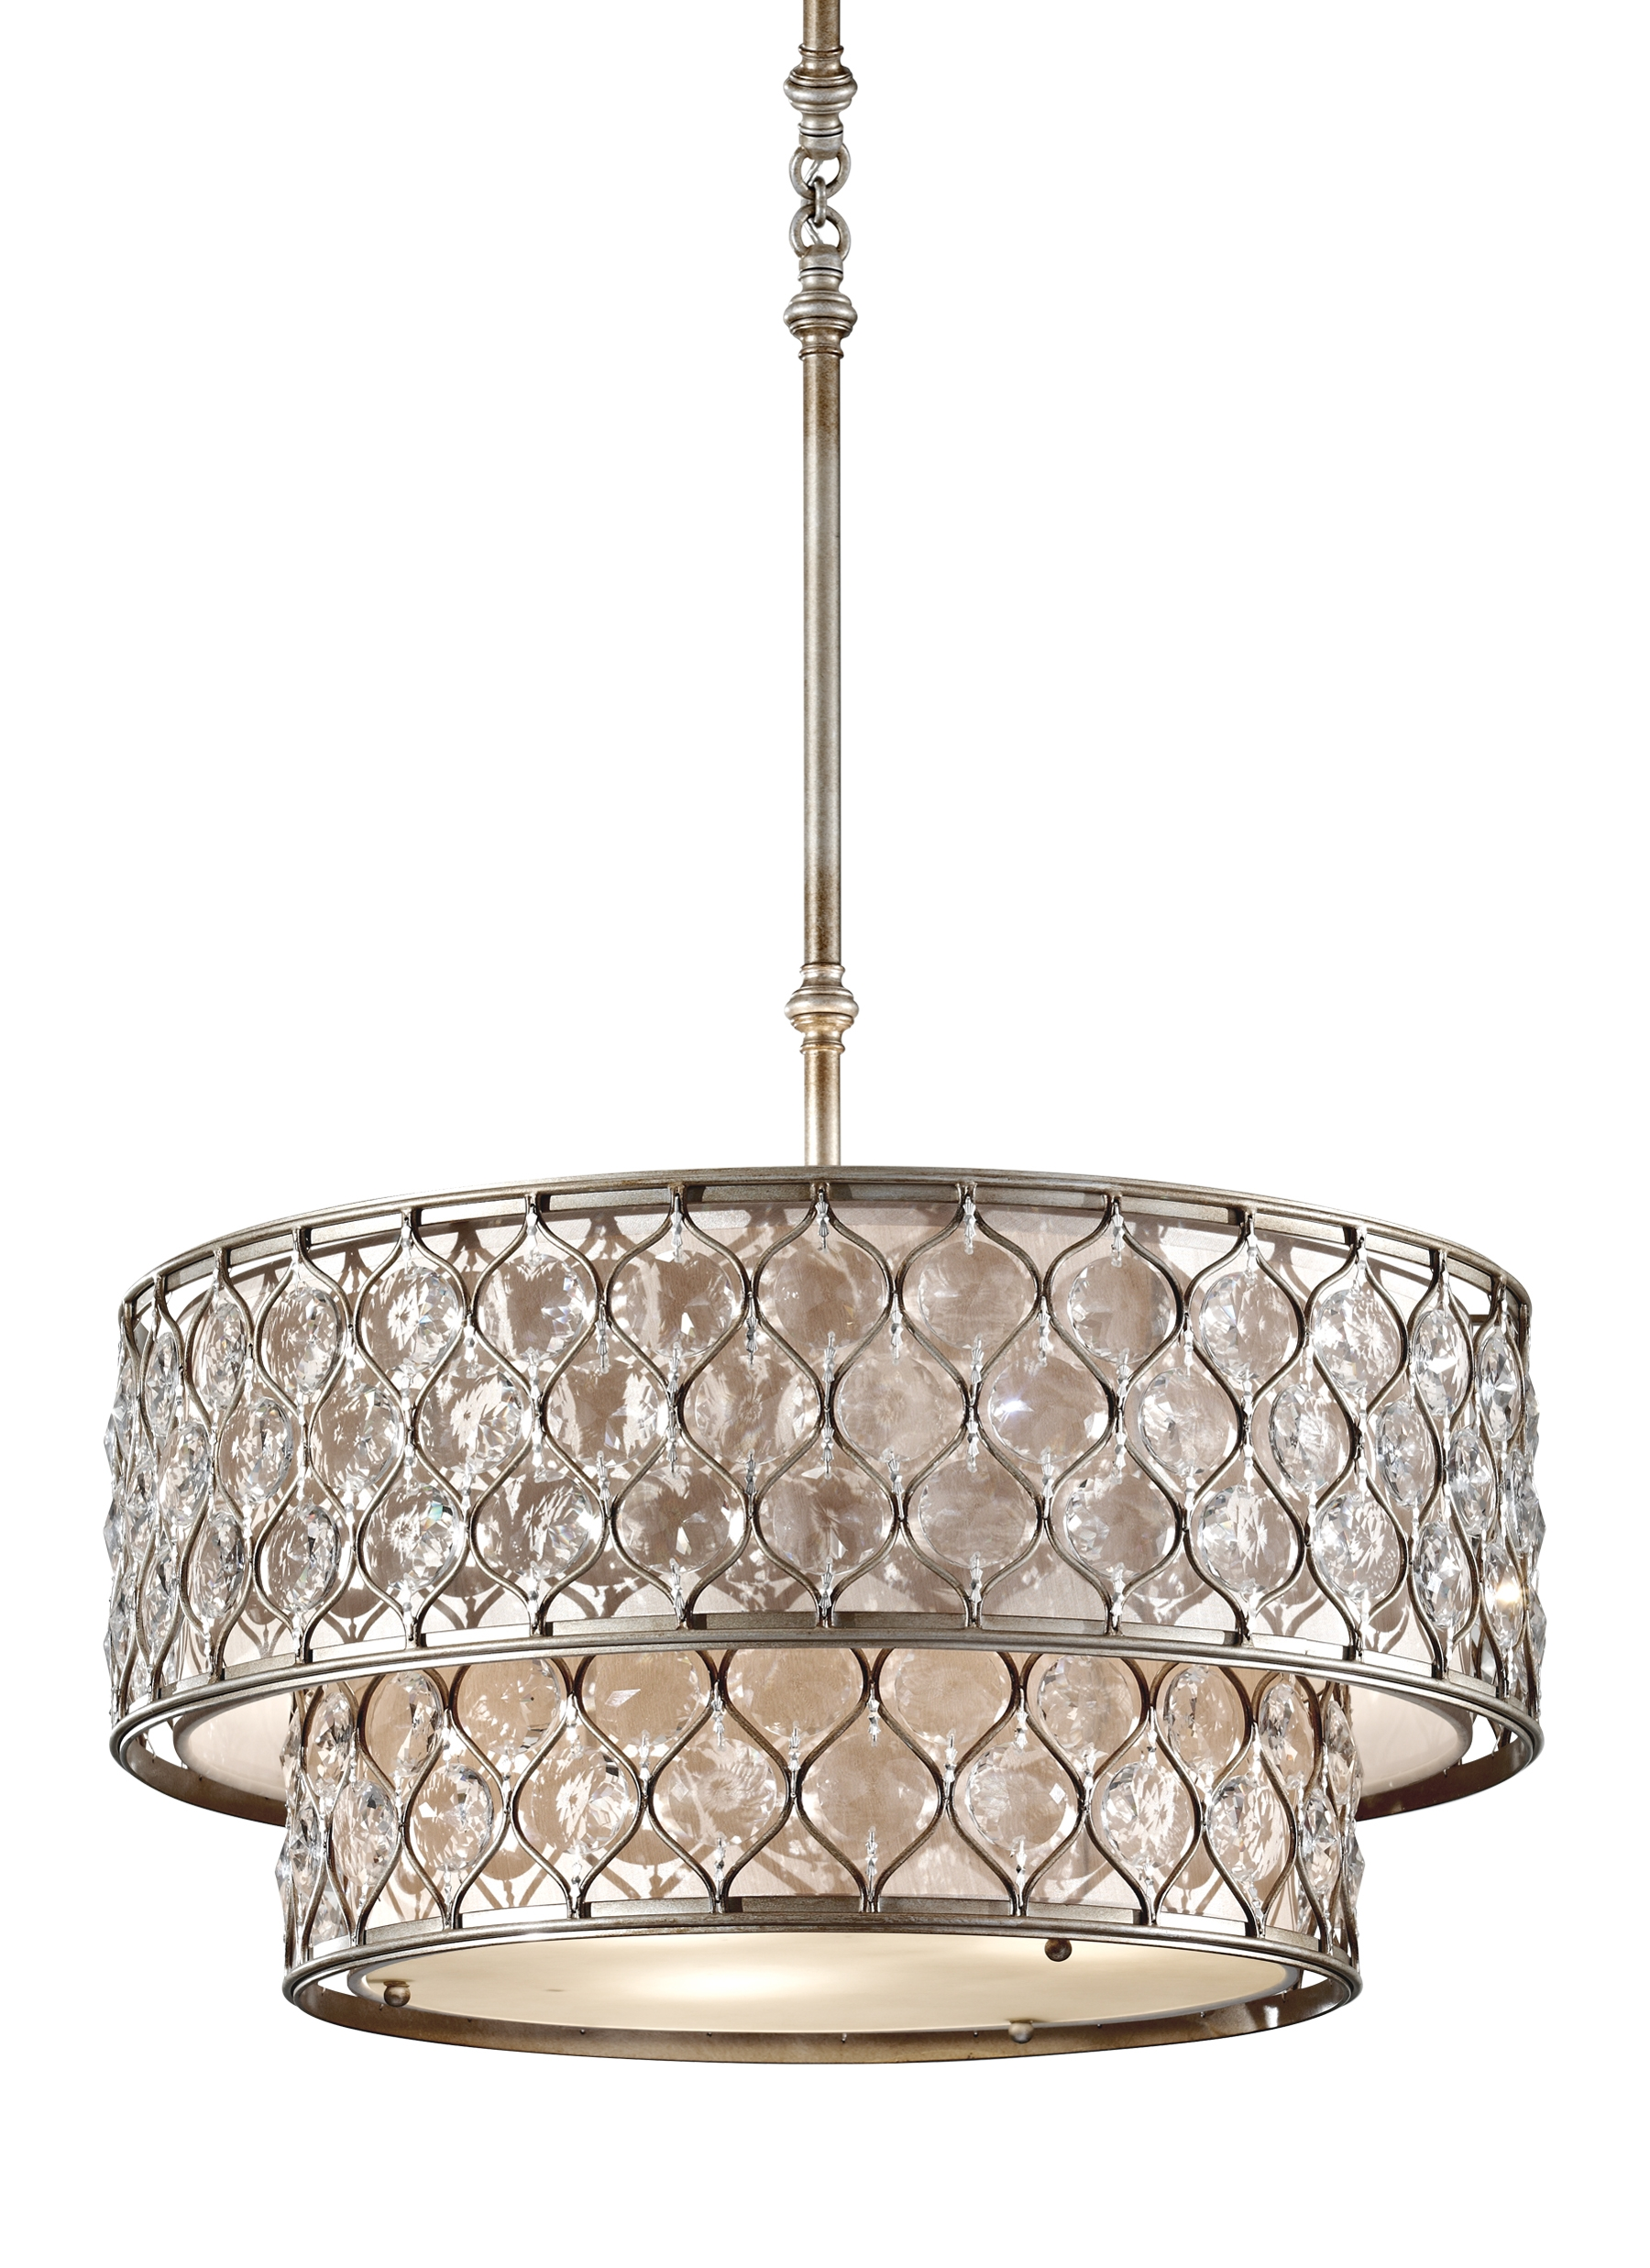 F27076bus6 Light Chandelier Burnished Silver With Regard To Feiss Chandeliers (Image 8 of 25)